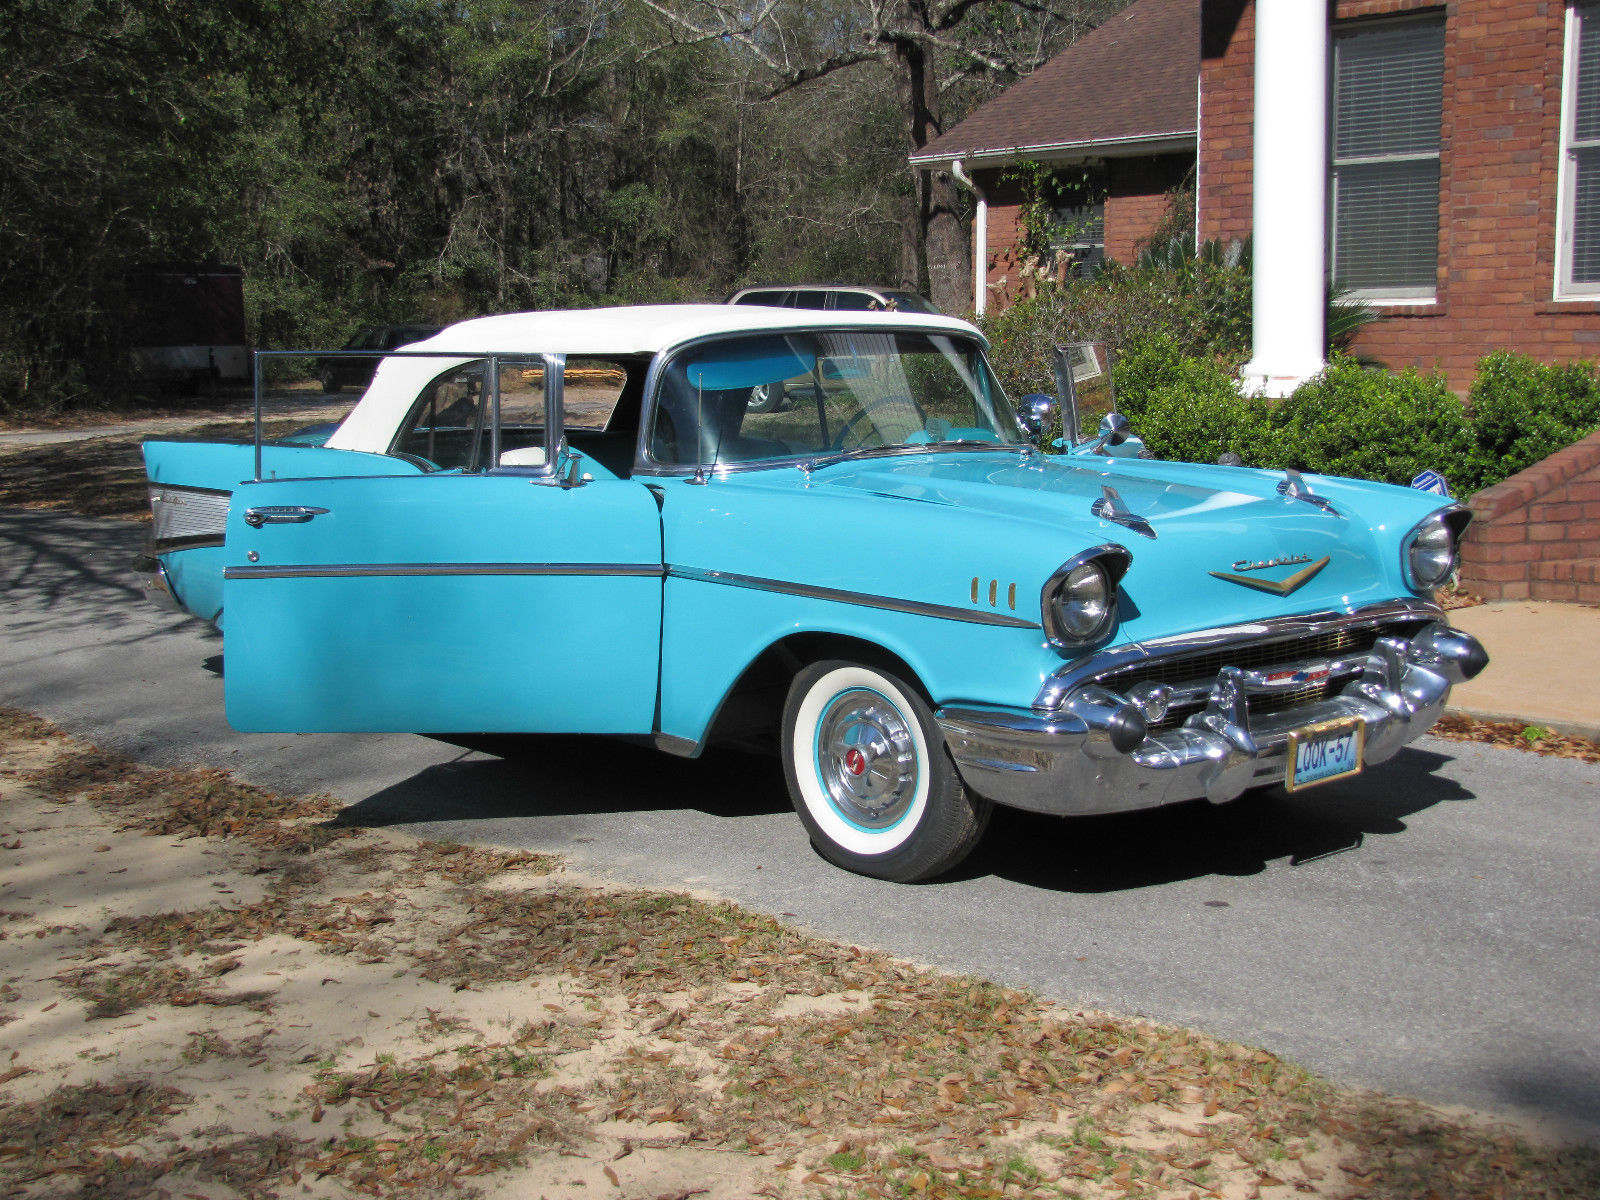 1957 Chevy Bel Air Convertible For Sale